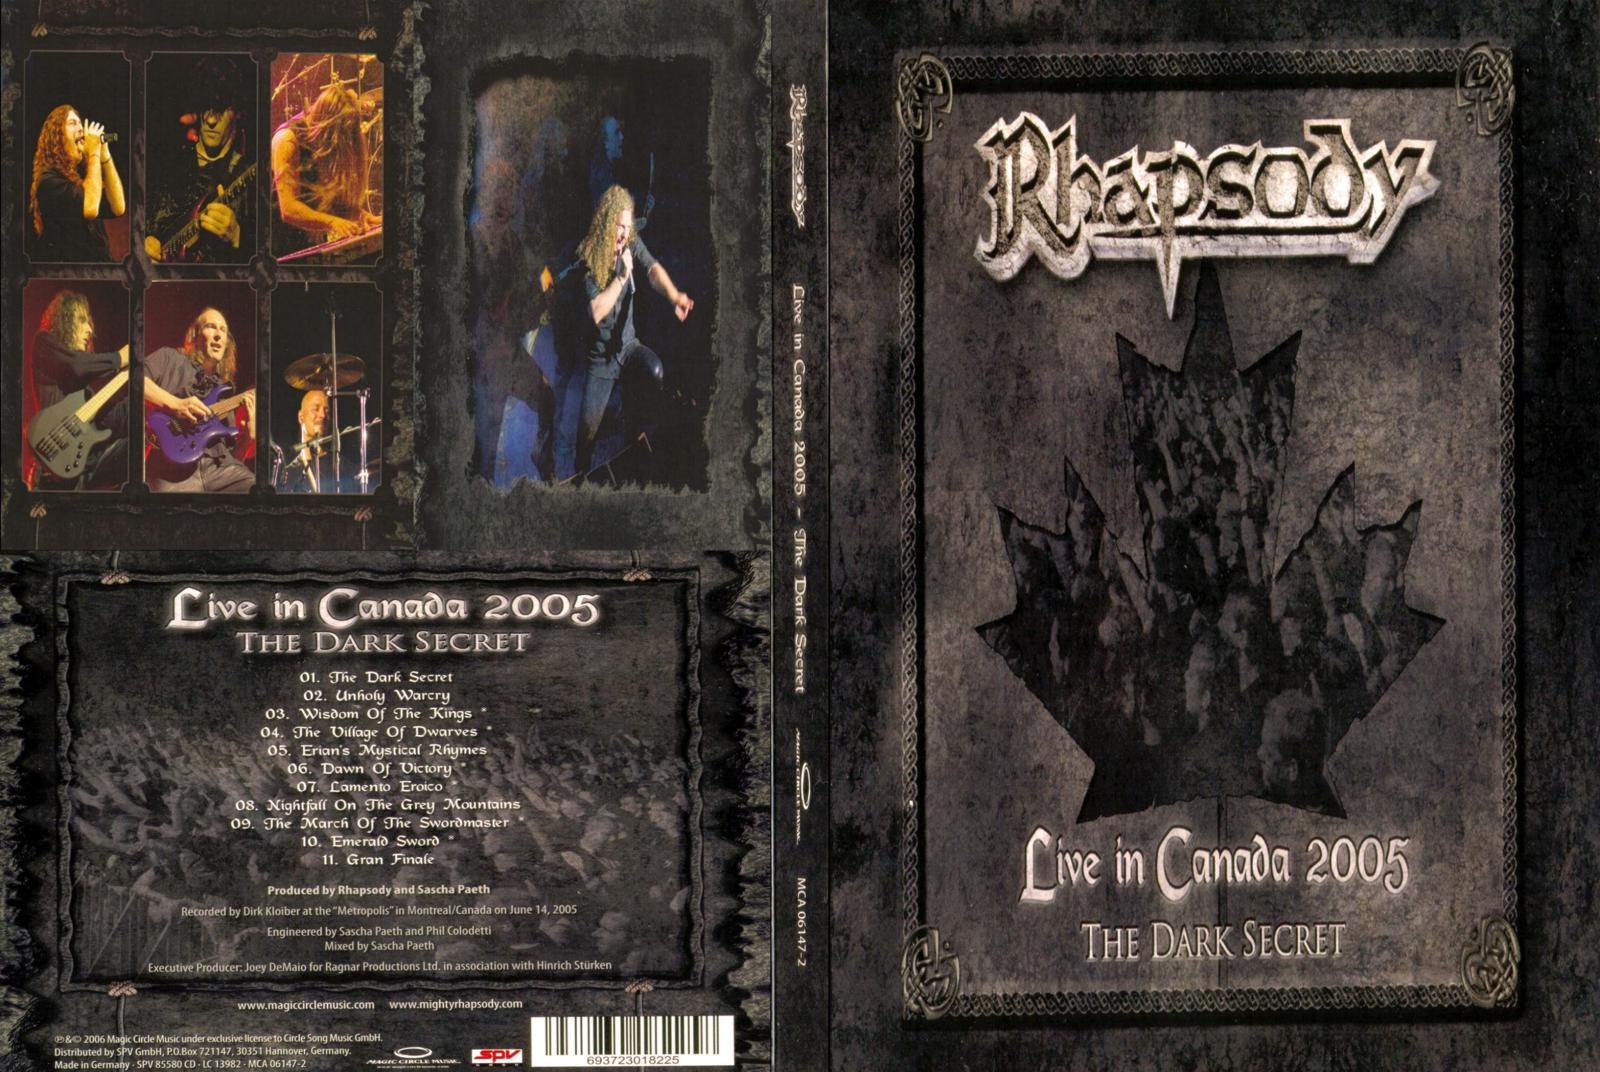 Rhapsody of fire live in canada download